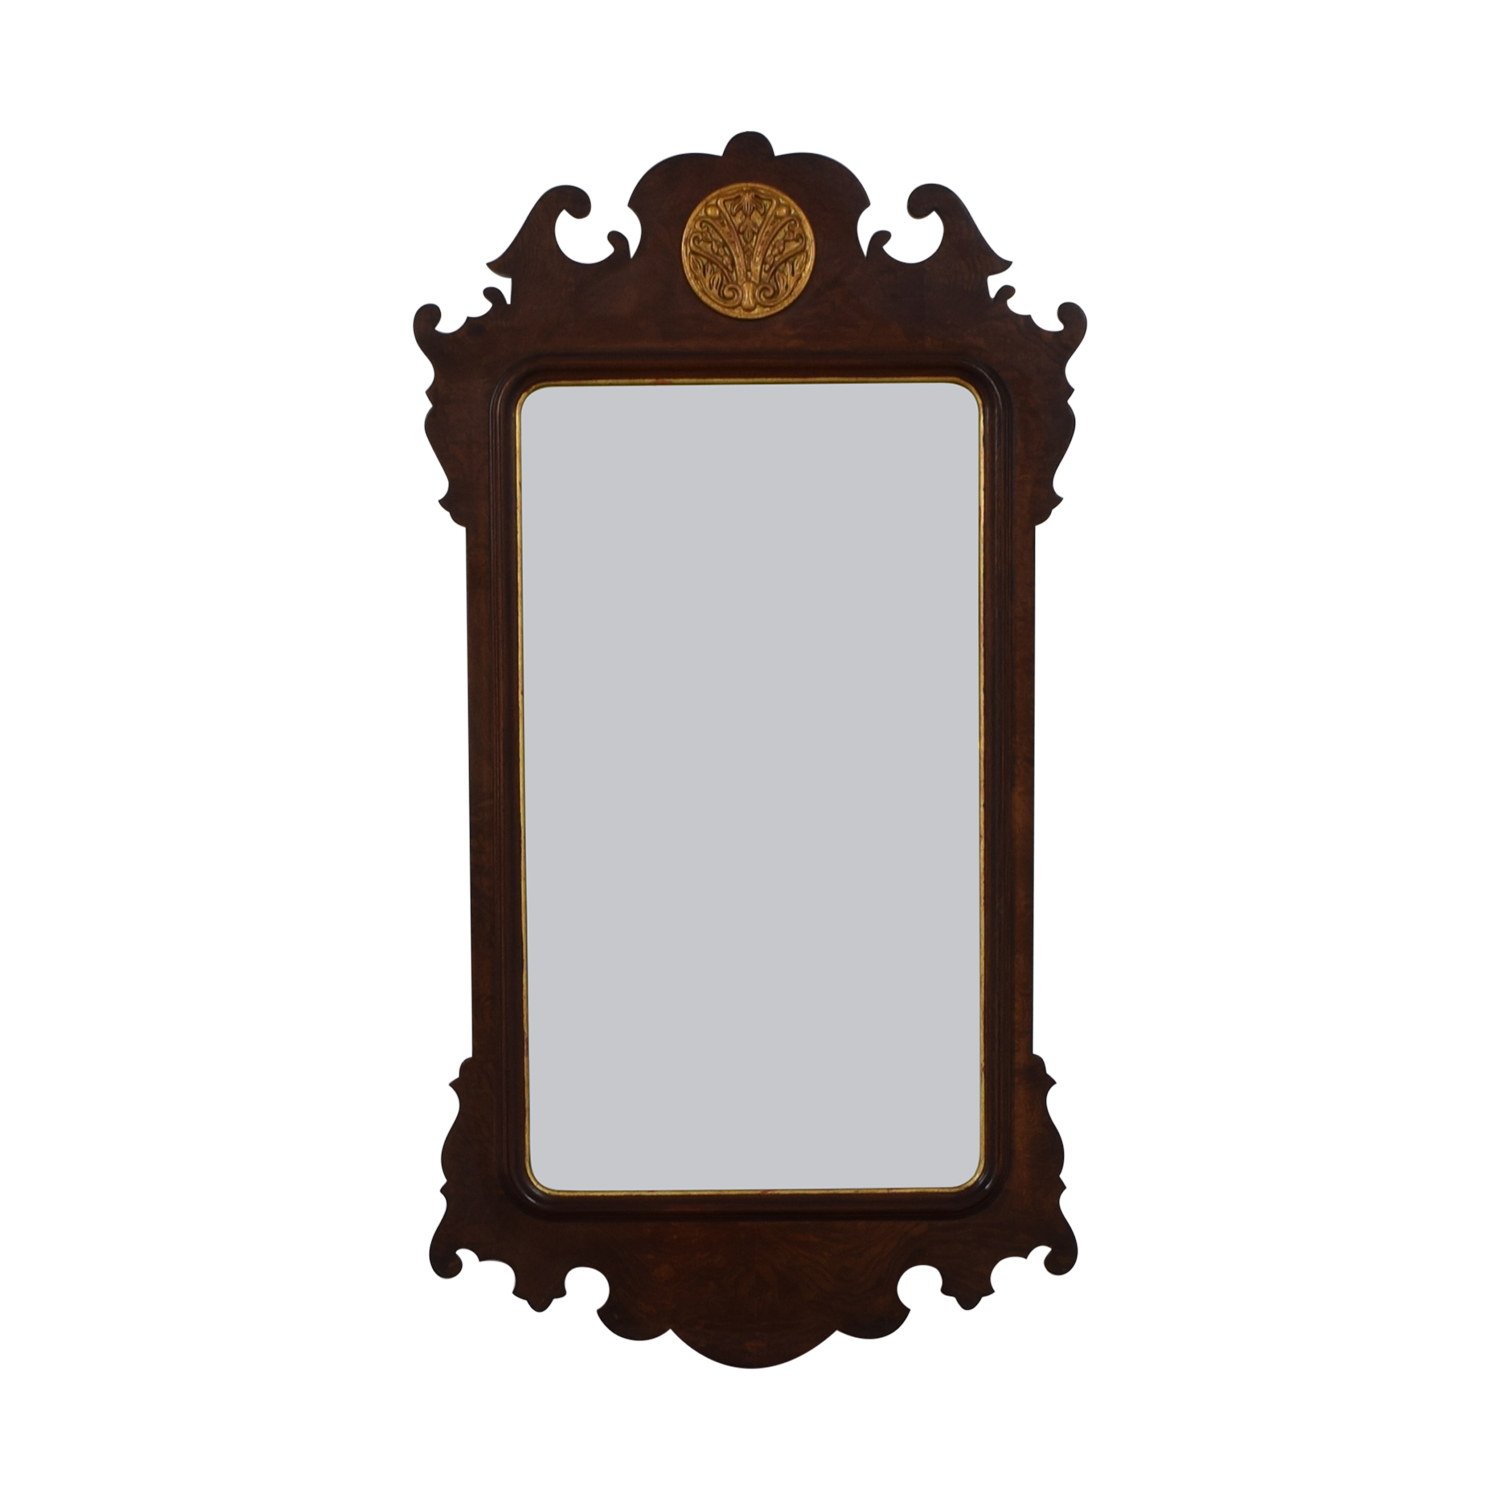 Henredon Furniture Henredon Mahogany Wall Mirror dimensions